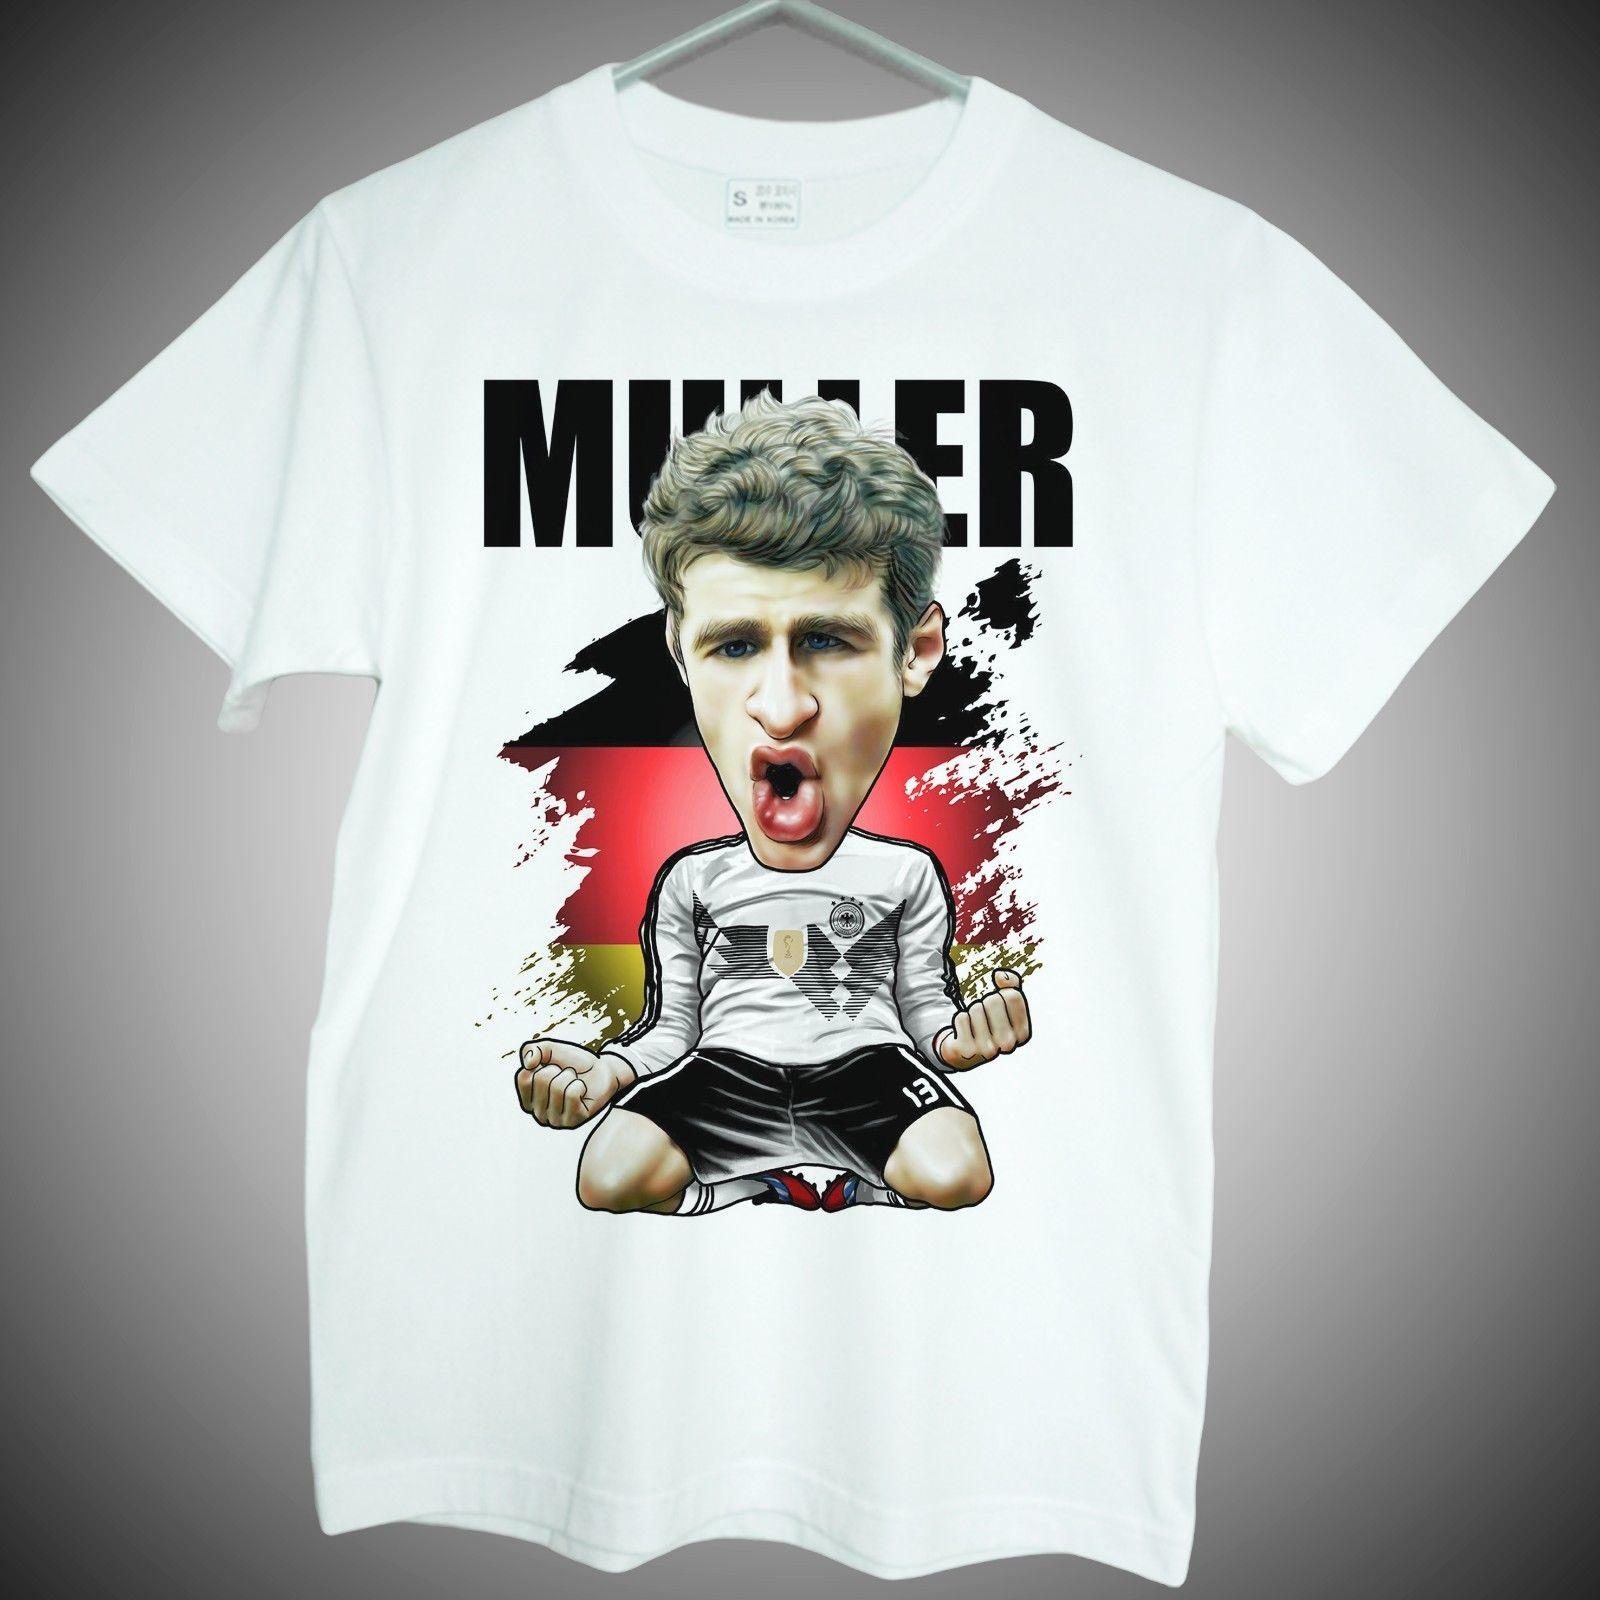 buy online 9c505 2c5fd T-shirts of Thomas Muller World cup Germany soccer star short sleeve fans  gifts Funny free shipping Unisex Casual Tshirt top